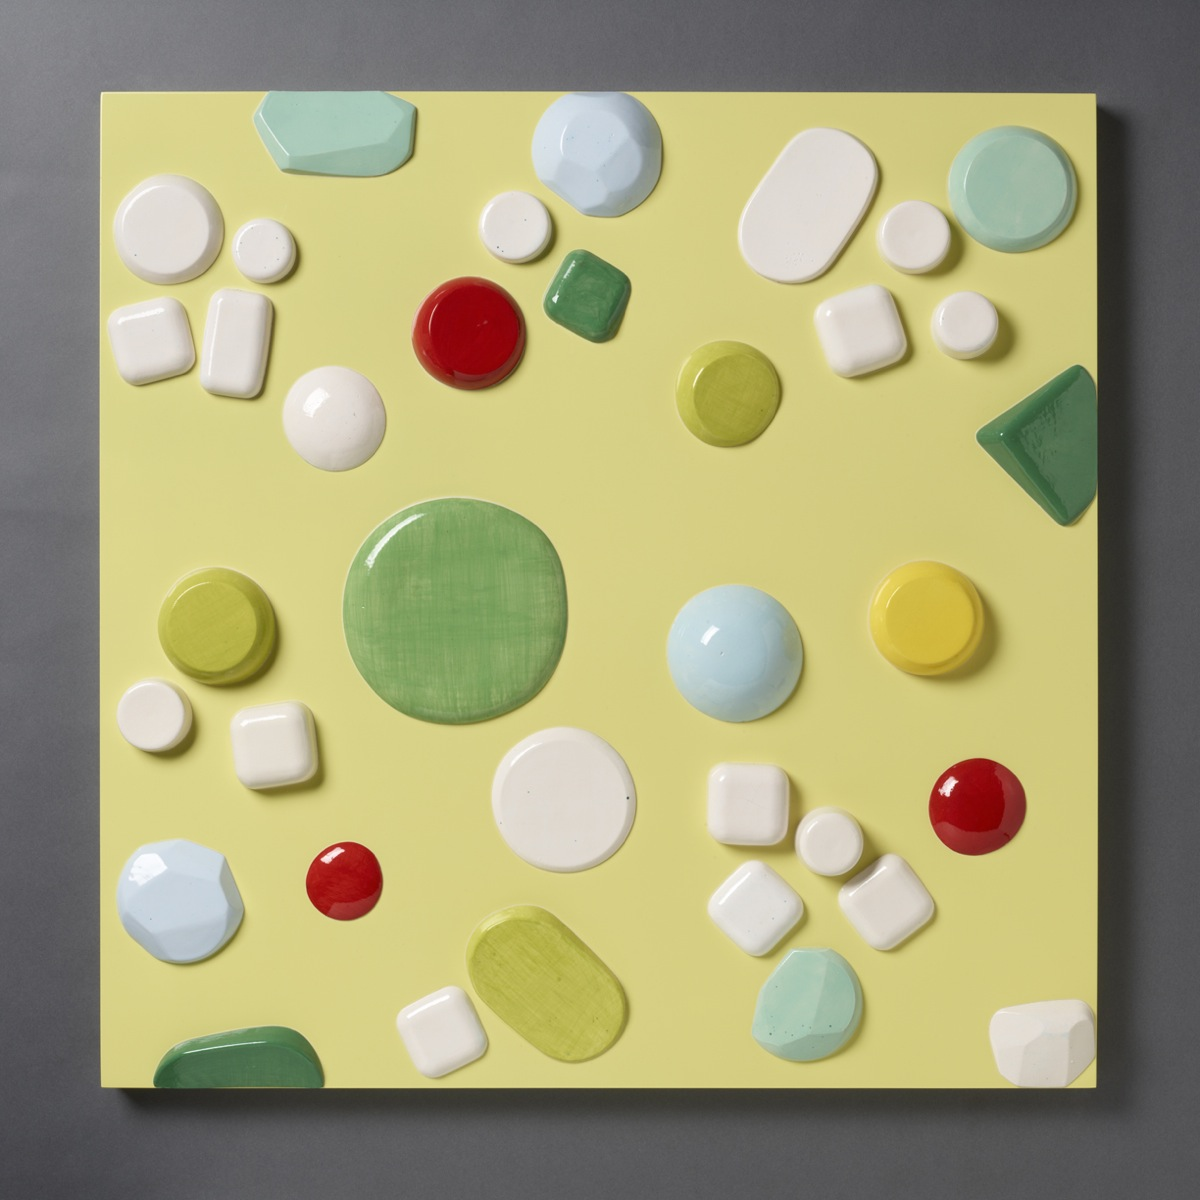 """Candy Series #3 – 2012 – High Fired Ceramics on Automotive Finished Panel – 36 x 36 - <a href=""""mailto:judbergeron@mac.com?subject=Inquire: Candy Series #3 – 2012"""">Inquire</a>"""